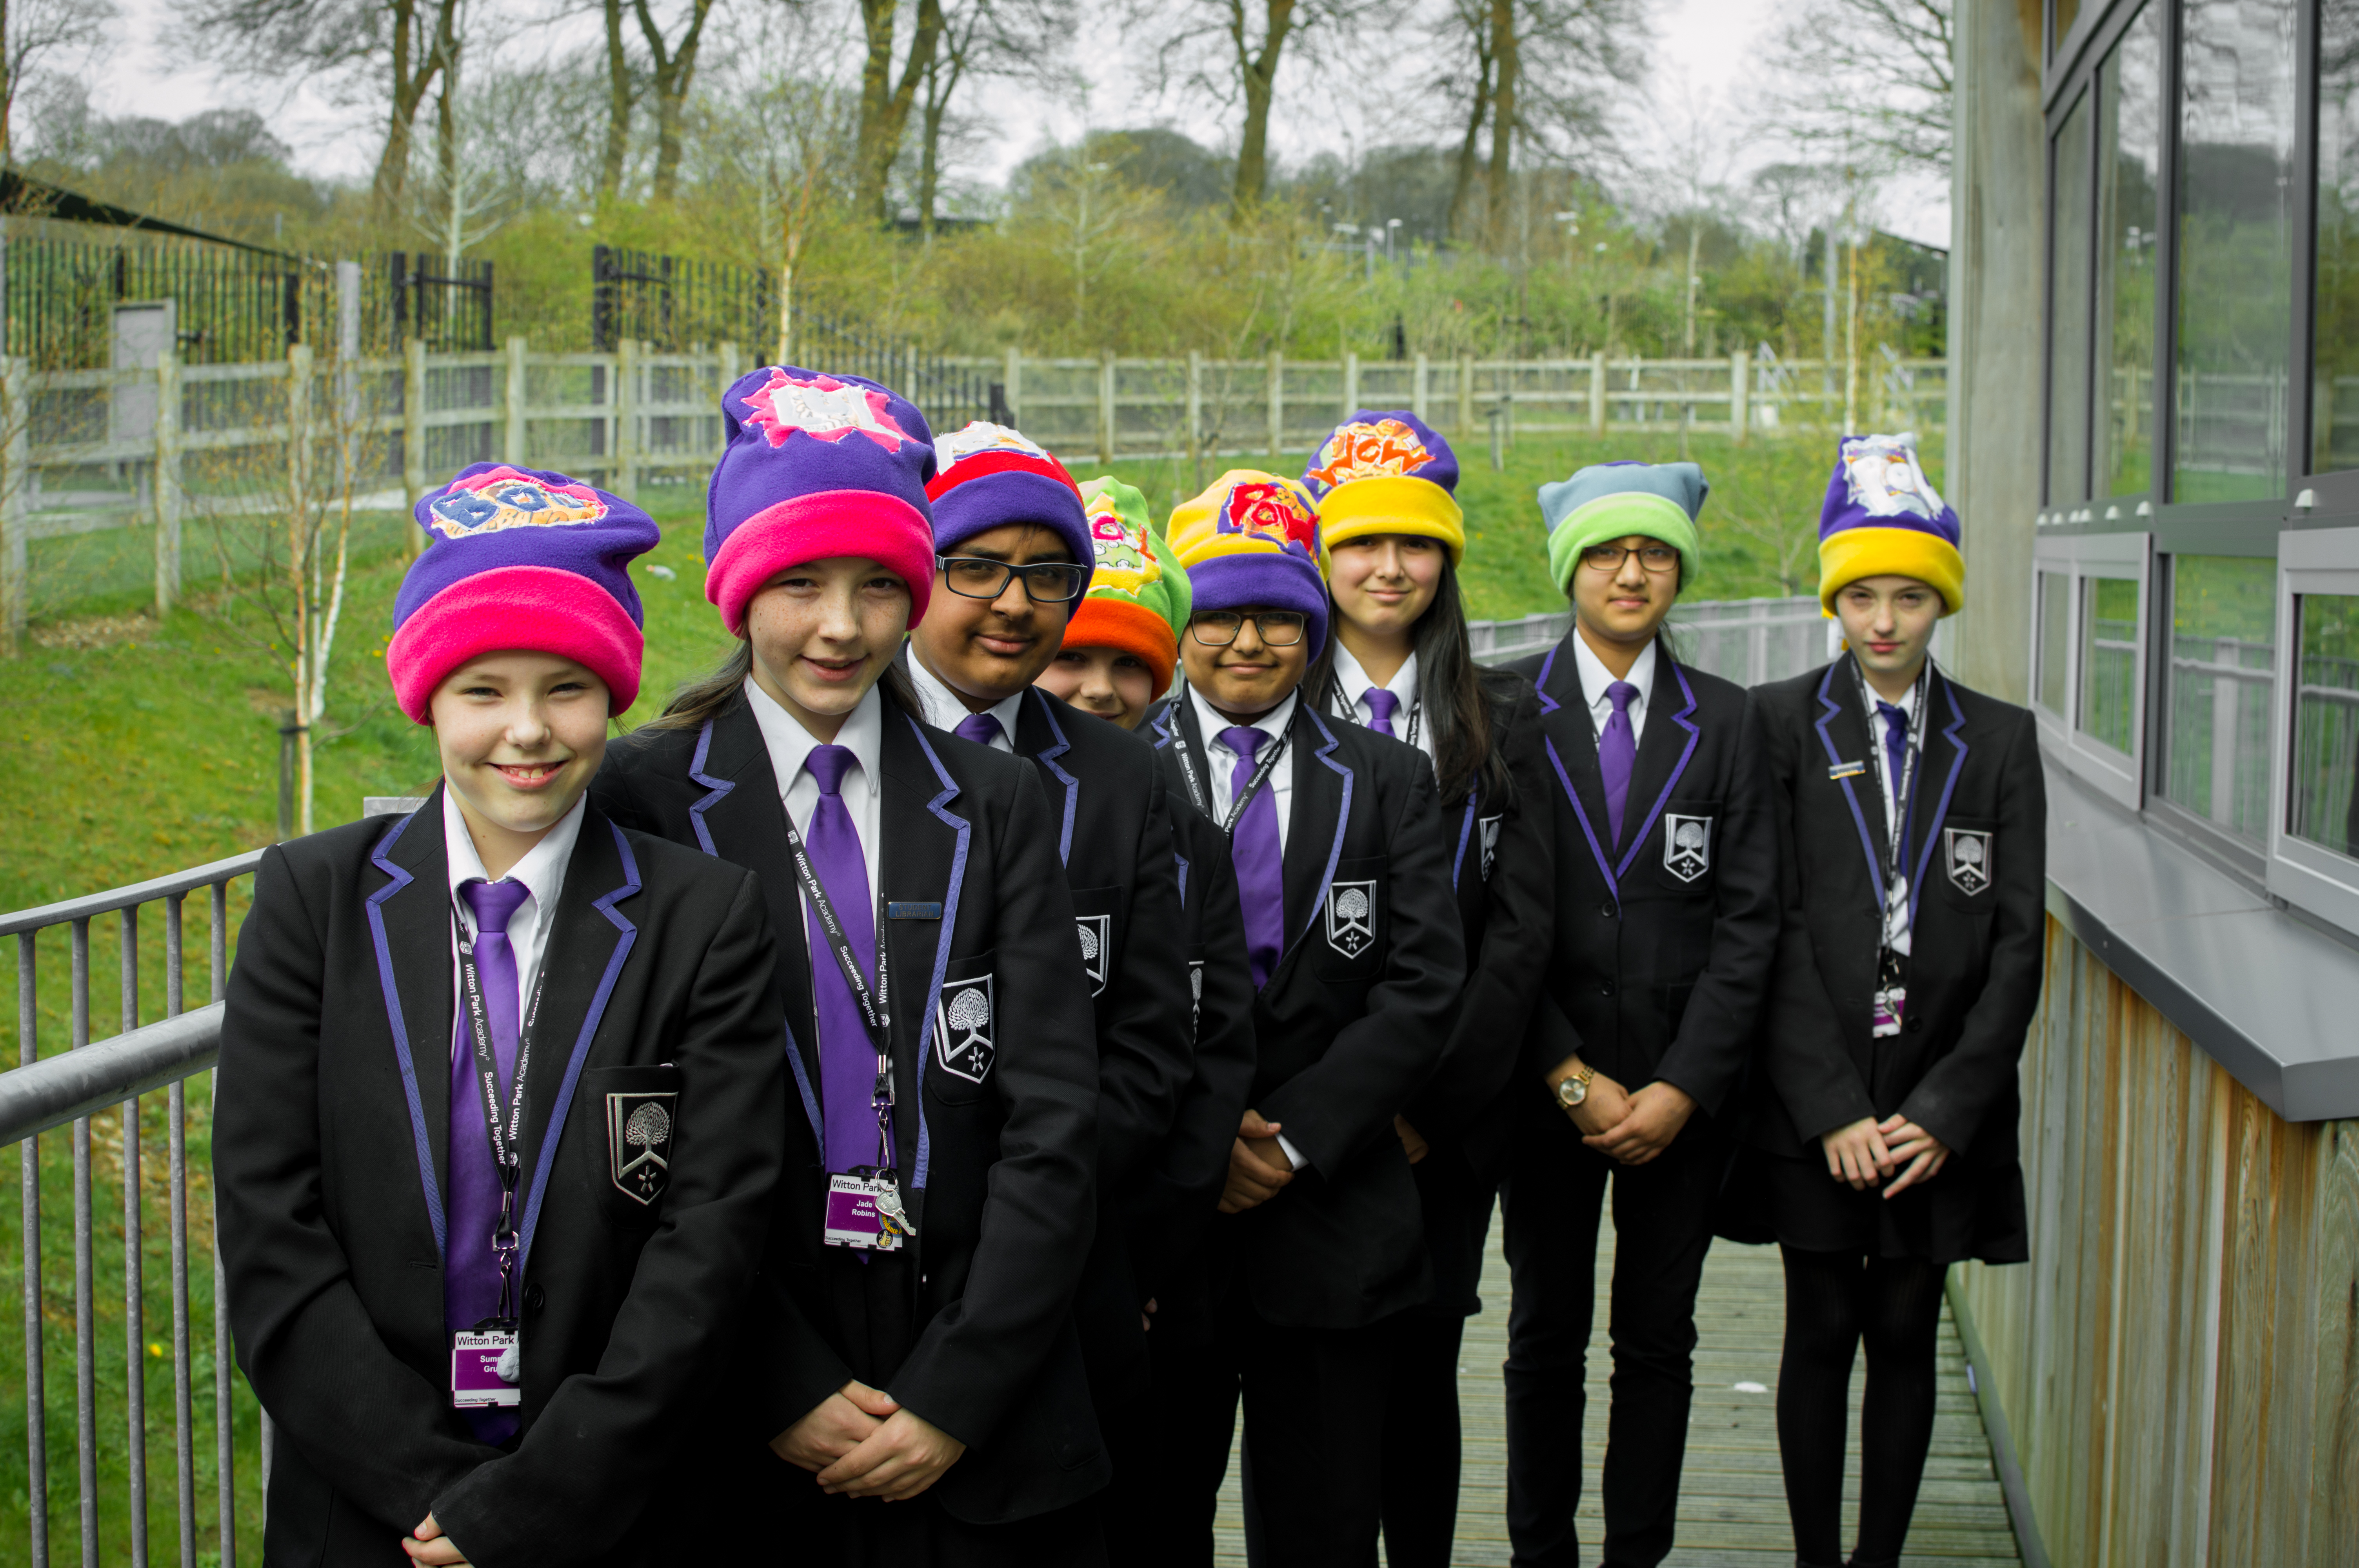 Year 7 hats Designs